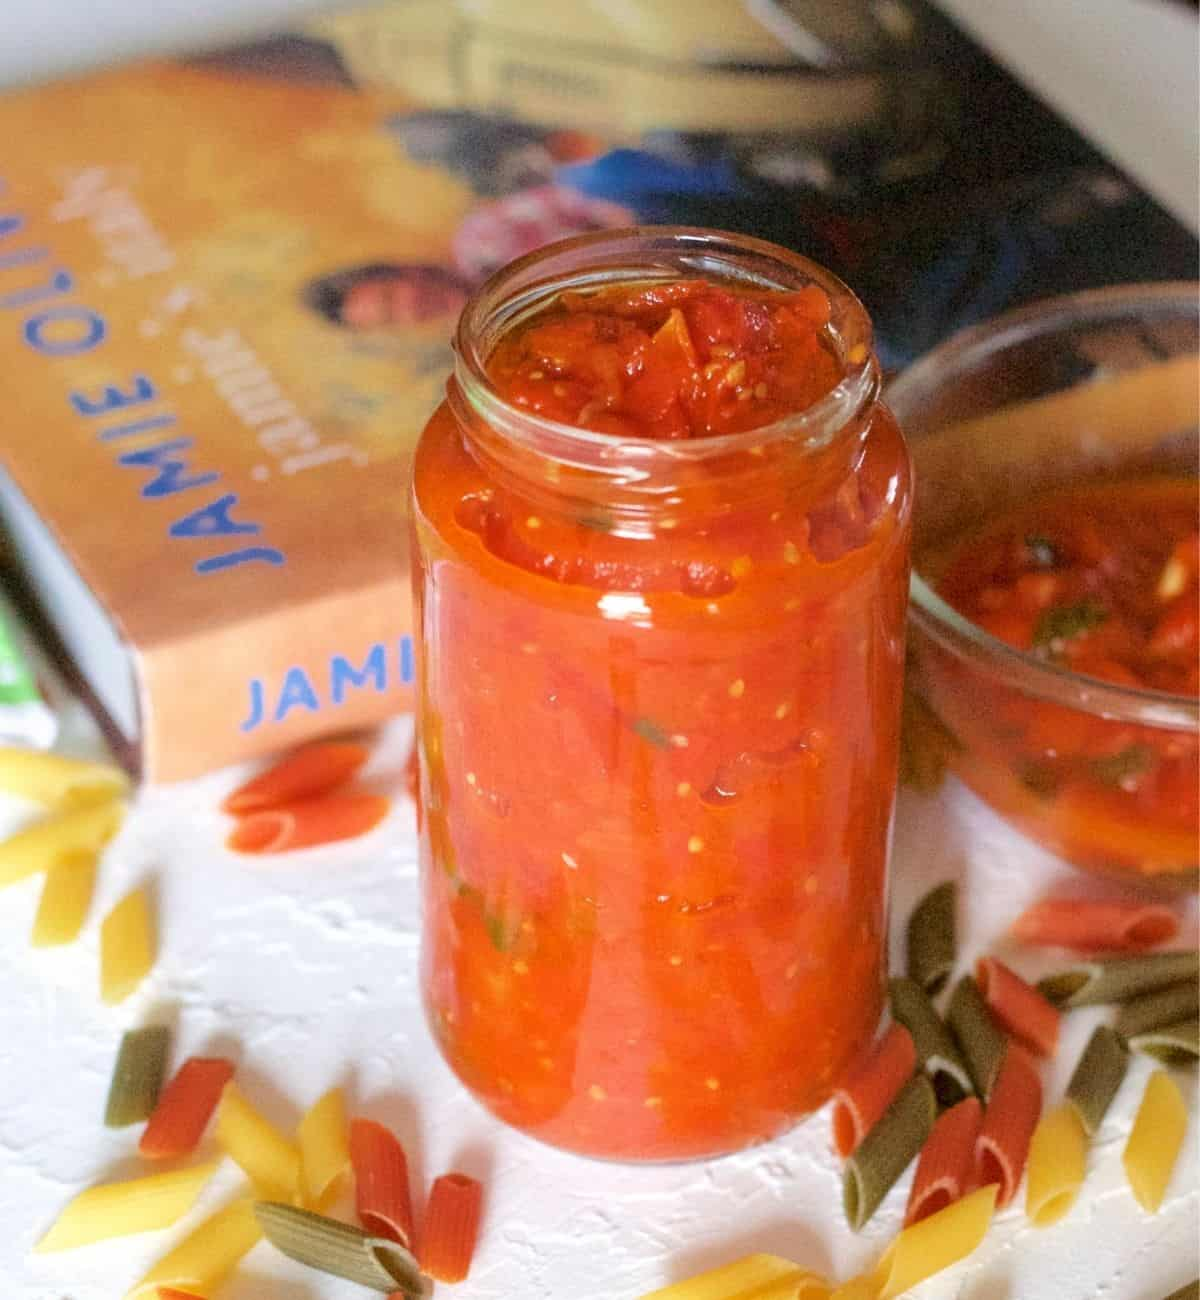 Orange red tomato basil pasta sauce in a tall glass jar with a yellow/orange covered cook book in the background. A bowl of sauce on the right and coloured penne pasta scattereda all around